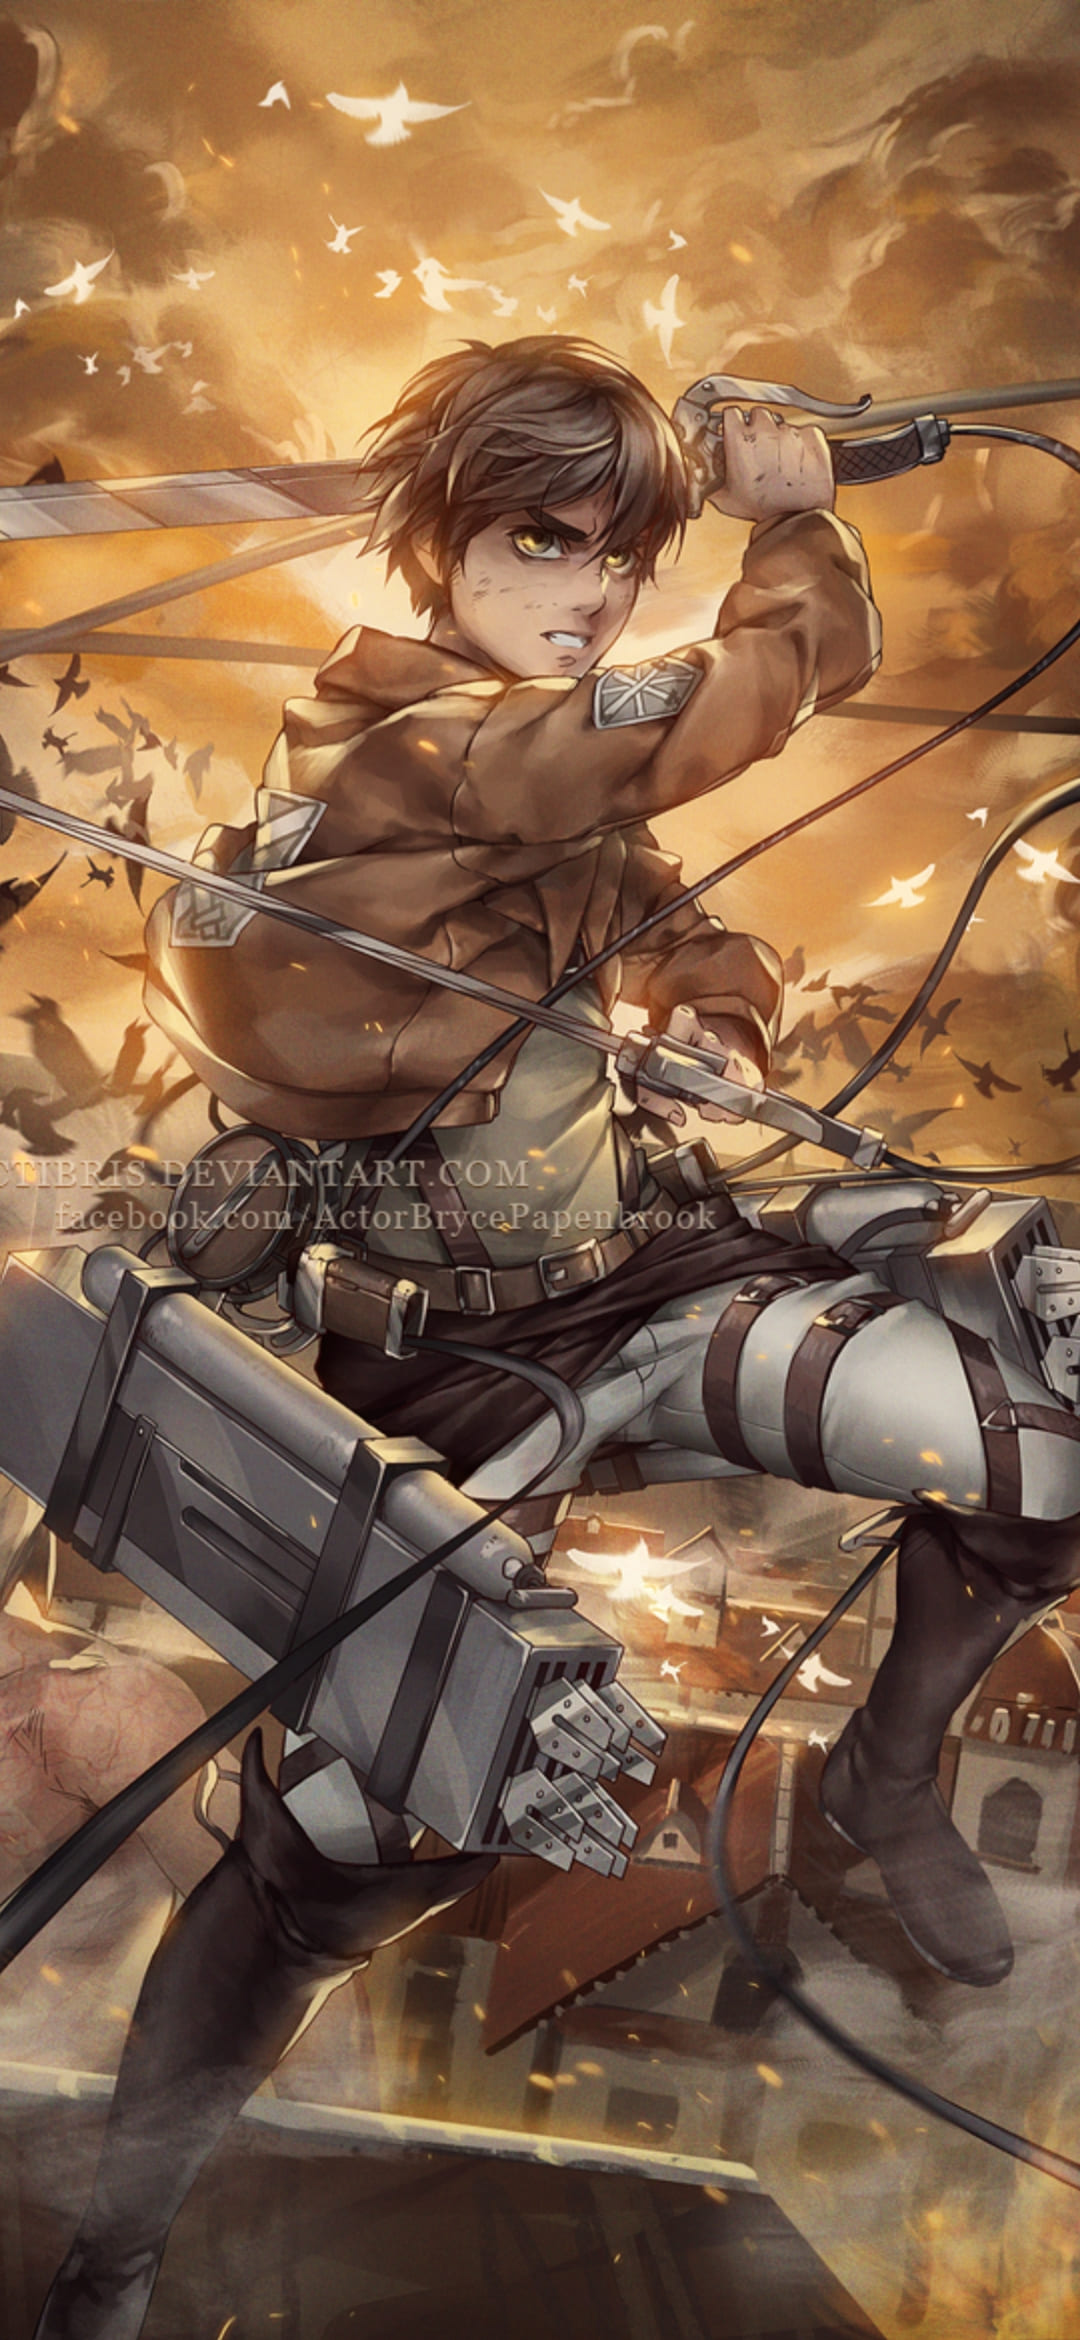 Loading the wrong wallpaper can trigger a. Attack On Titan Phone Wallpaper - Top Free Phone ...